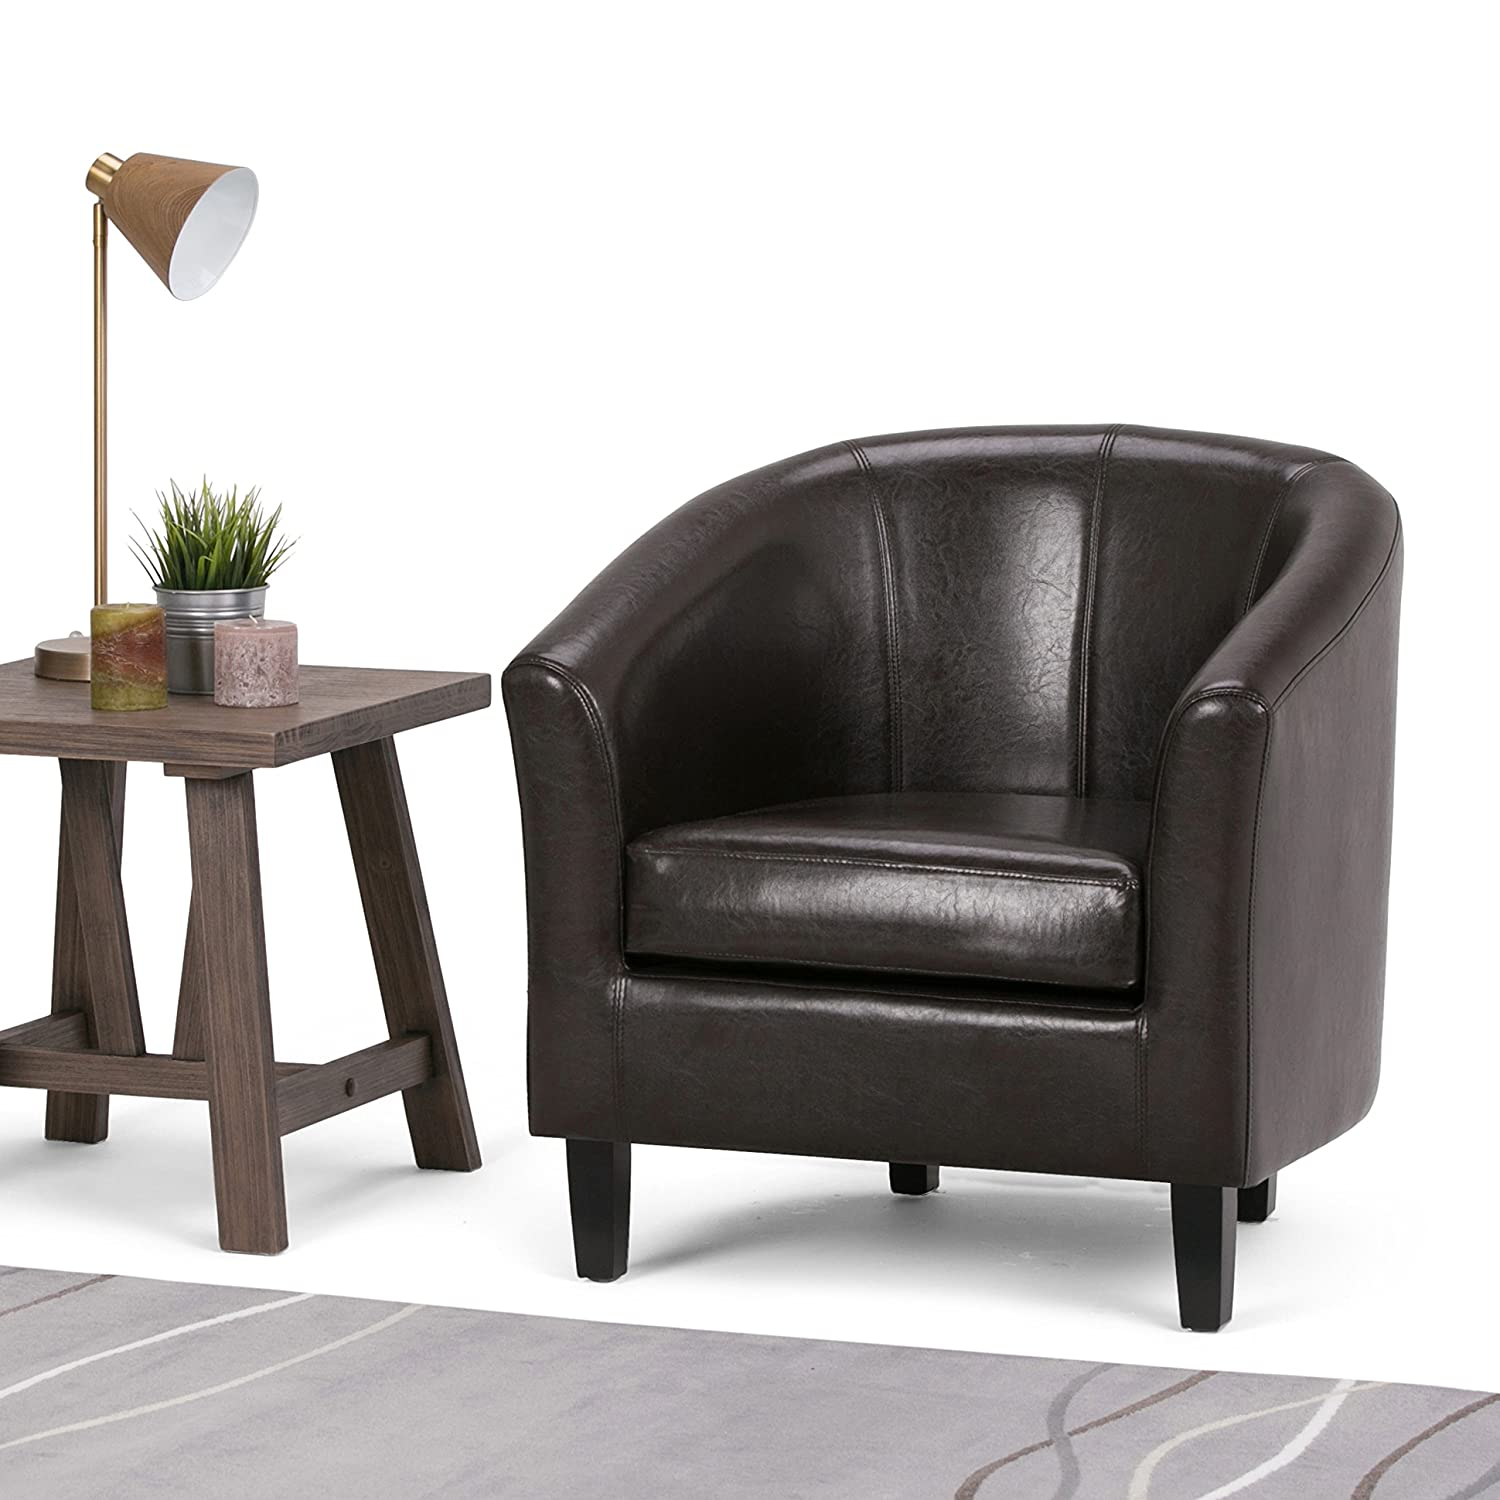 Best Accent Chair Reviews 2